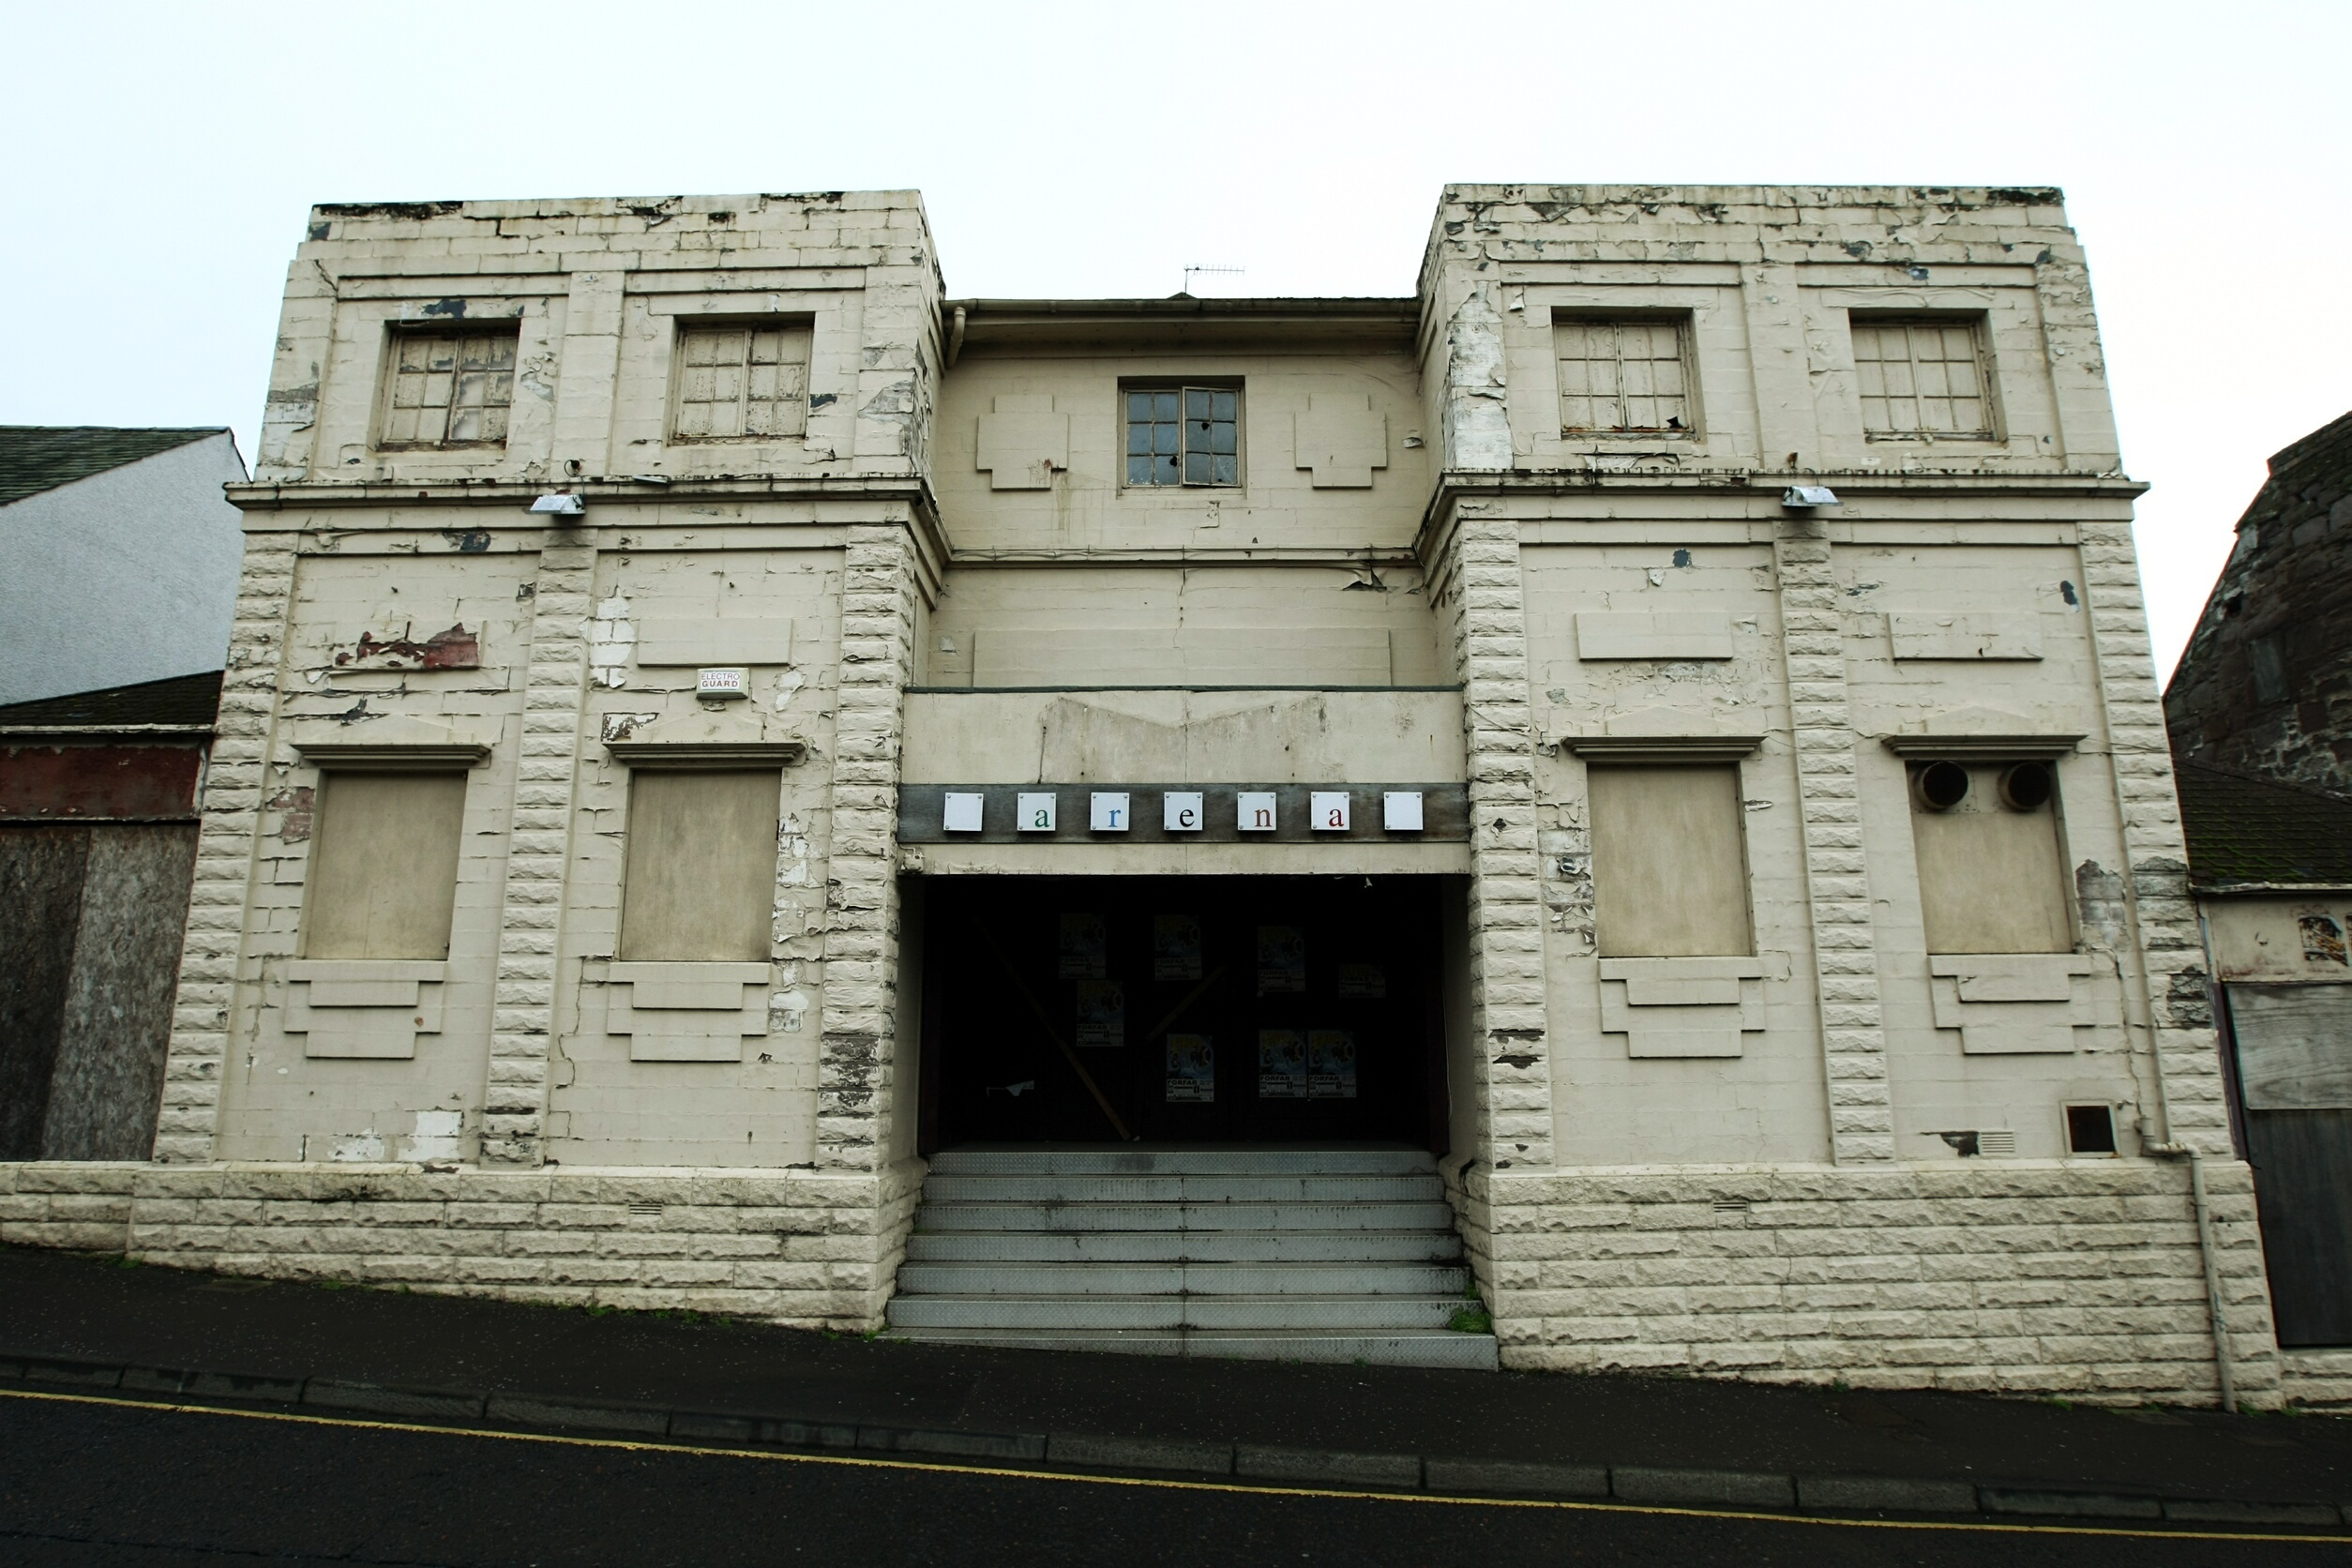 The legendary Flick's nightclub in Brechin